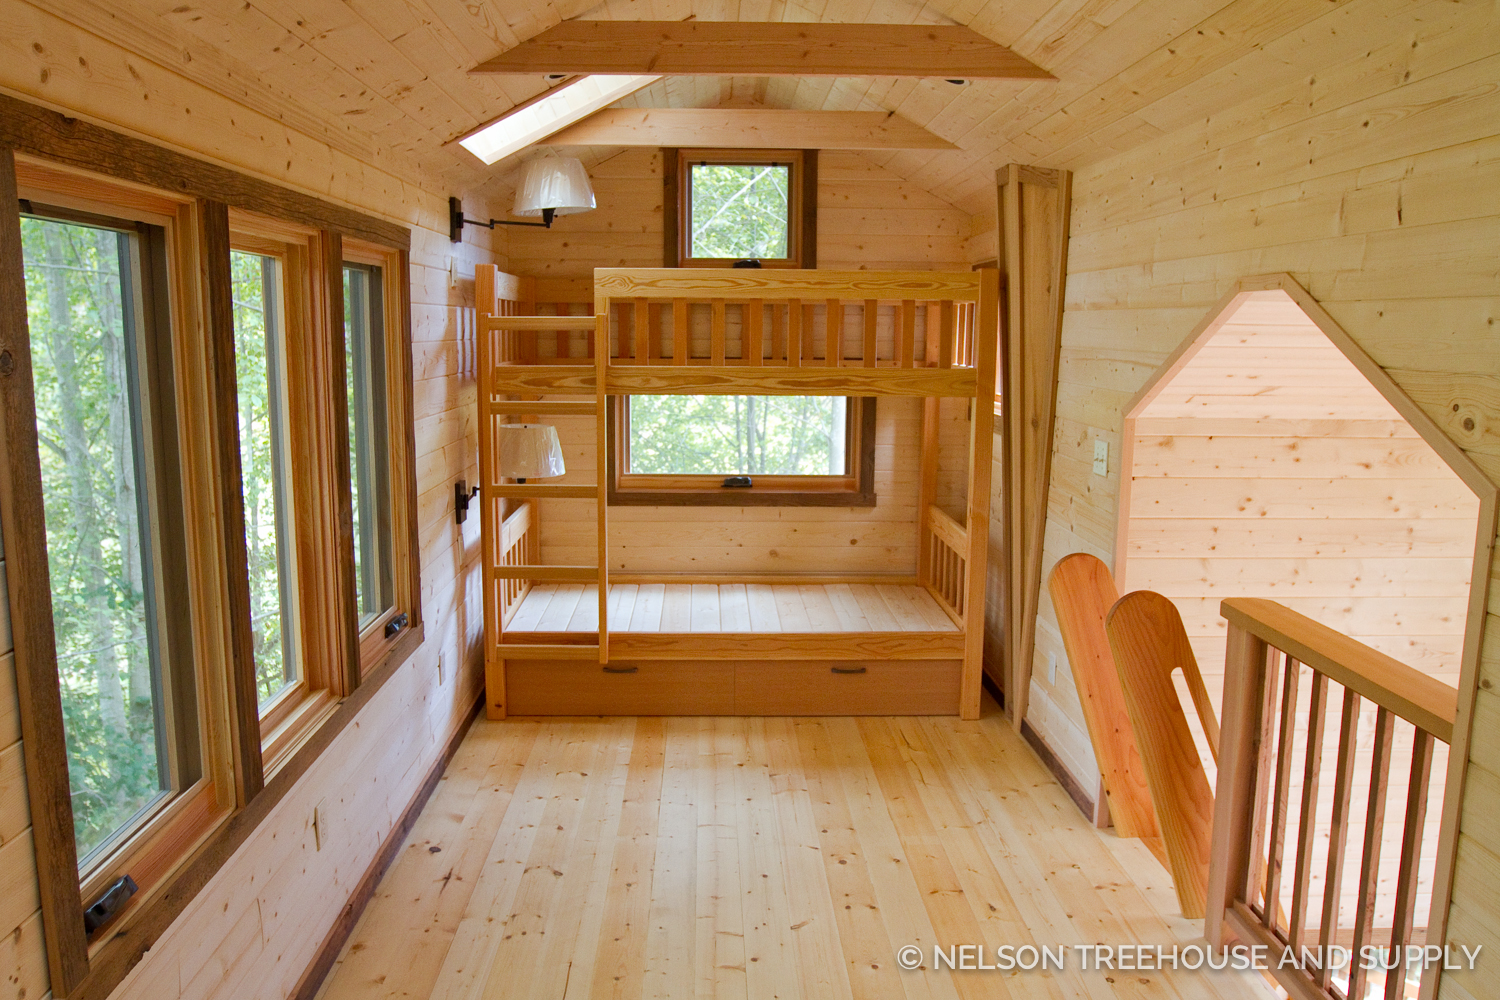 Daryl's design included pine wood paneling and an arboreal loft for the clients' grandchildren.